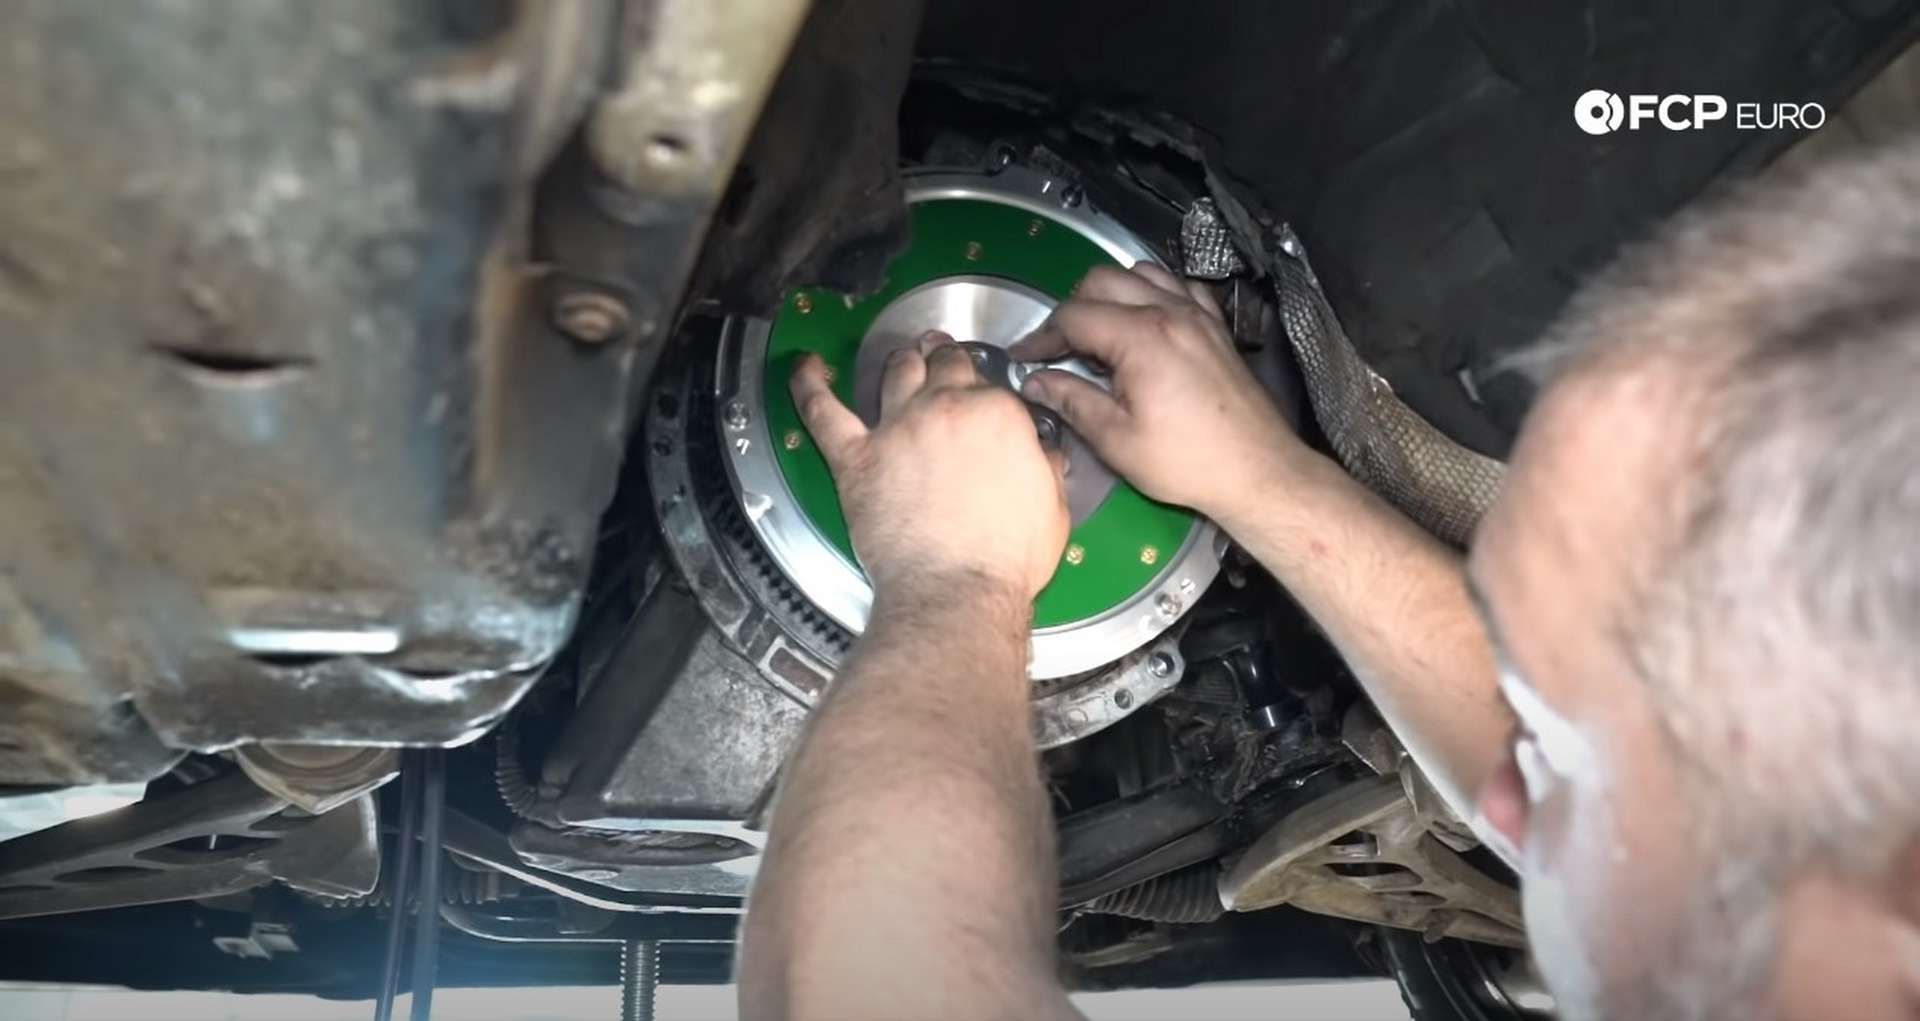 DIY BMW E46 Clutch Replacement installing the flywheel